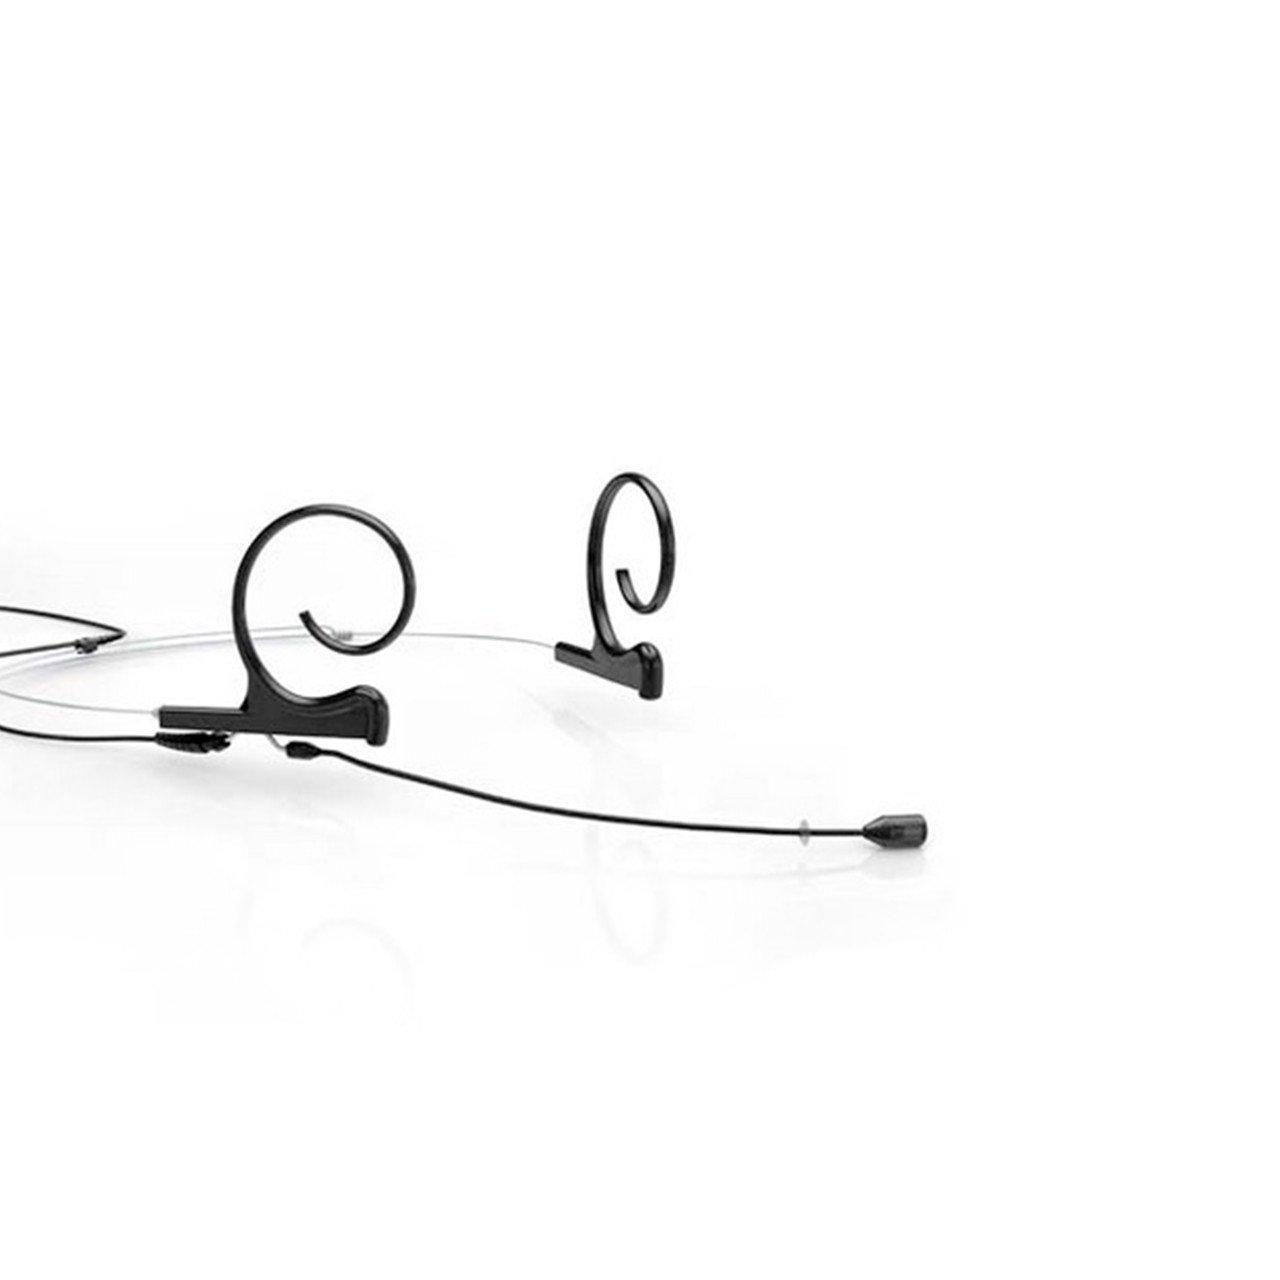 DPA d:fine 88 Dual-ear Directional Headset Microphone